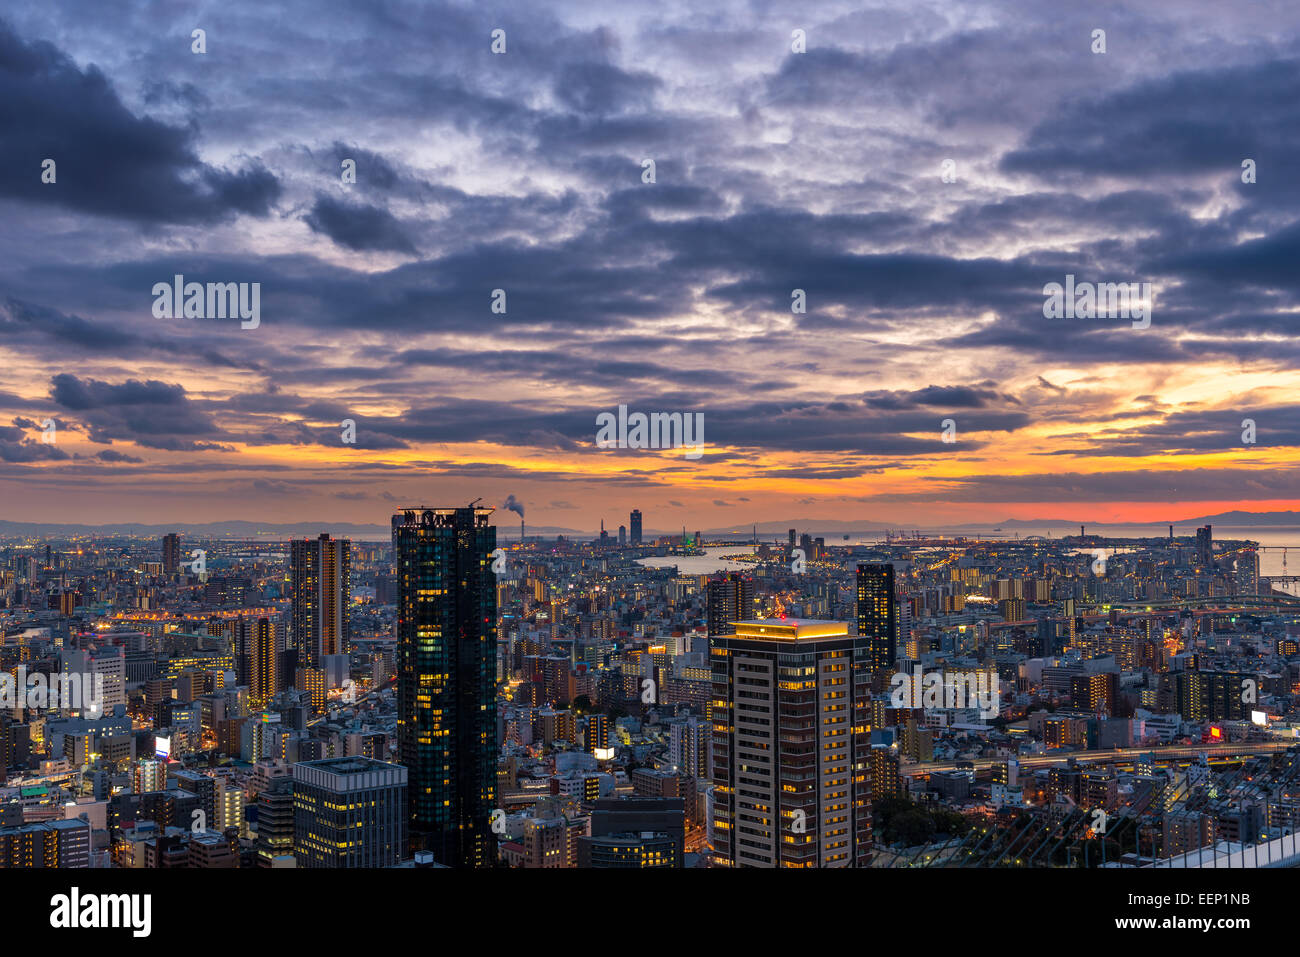 The sun sets over the vast cityscape of Osaka, Japan. - Stock Image